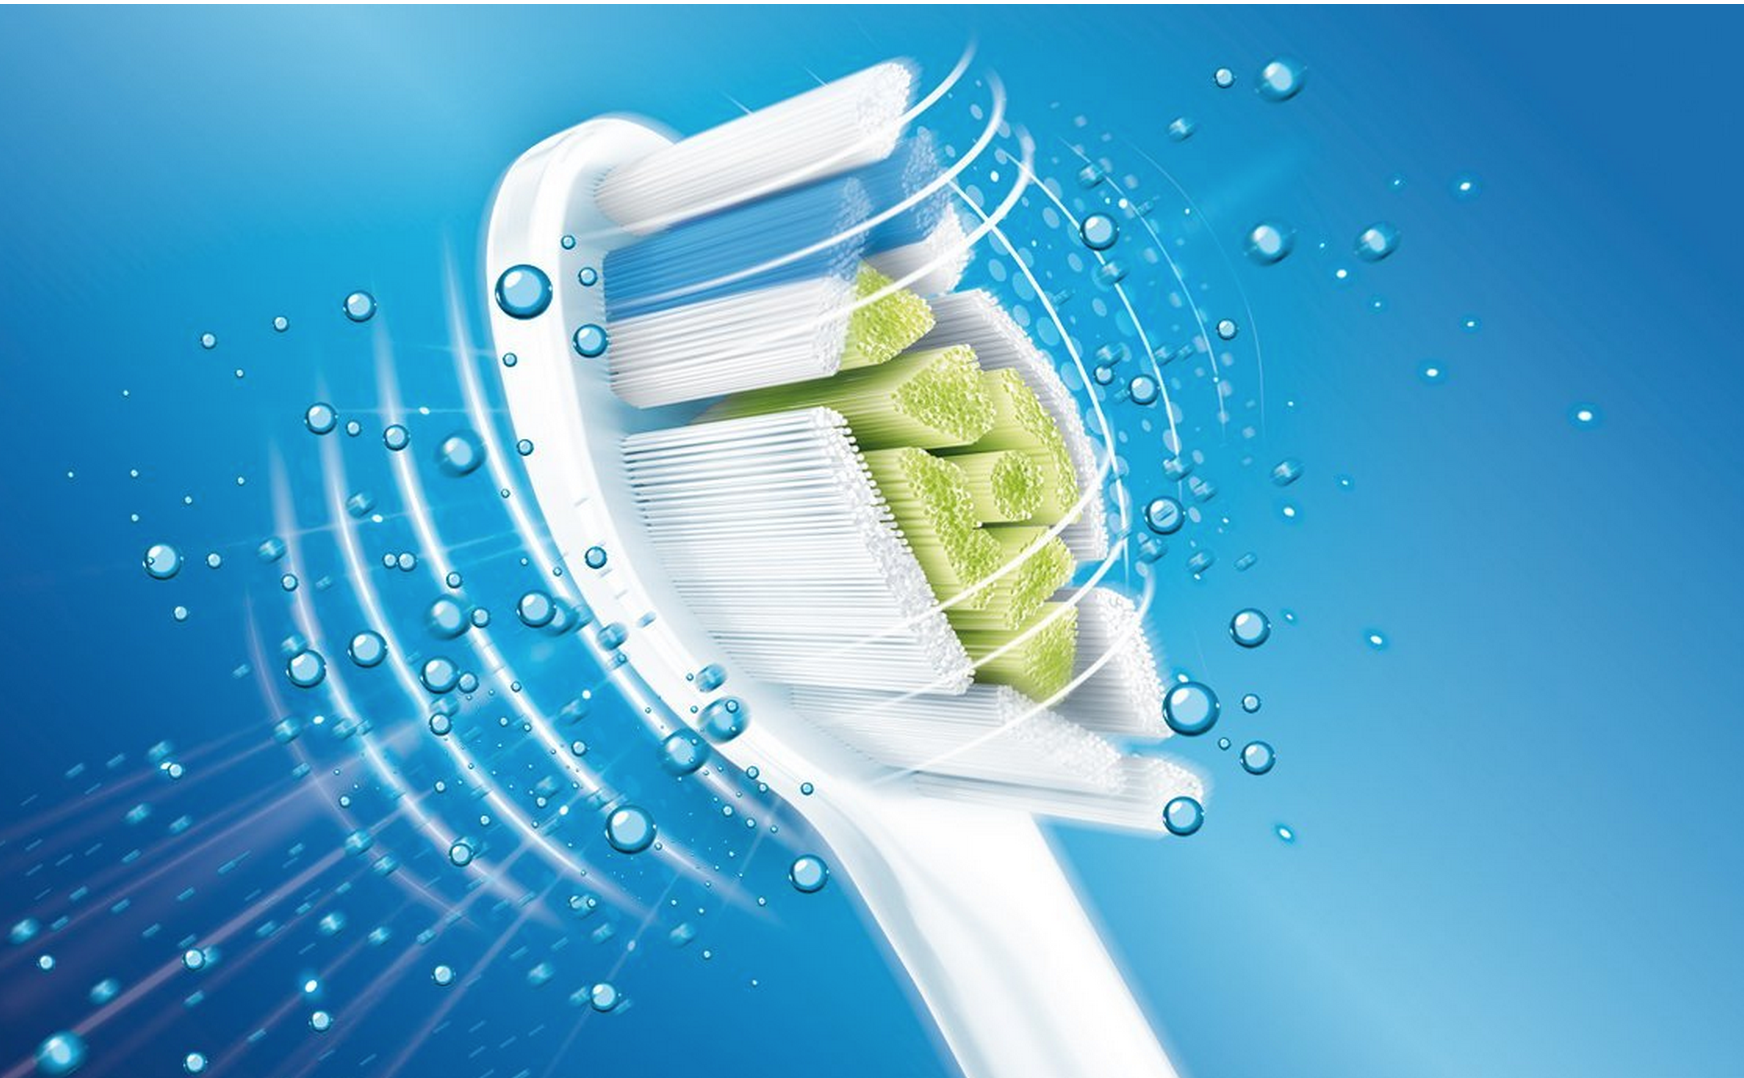 Philips Sonicare DiamondClean Replacement Brush Heads Only $14.99 (Reg. $29.99!)